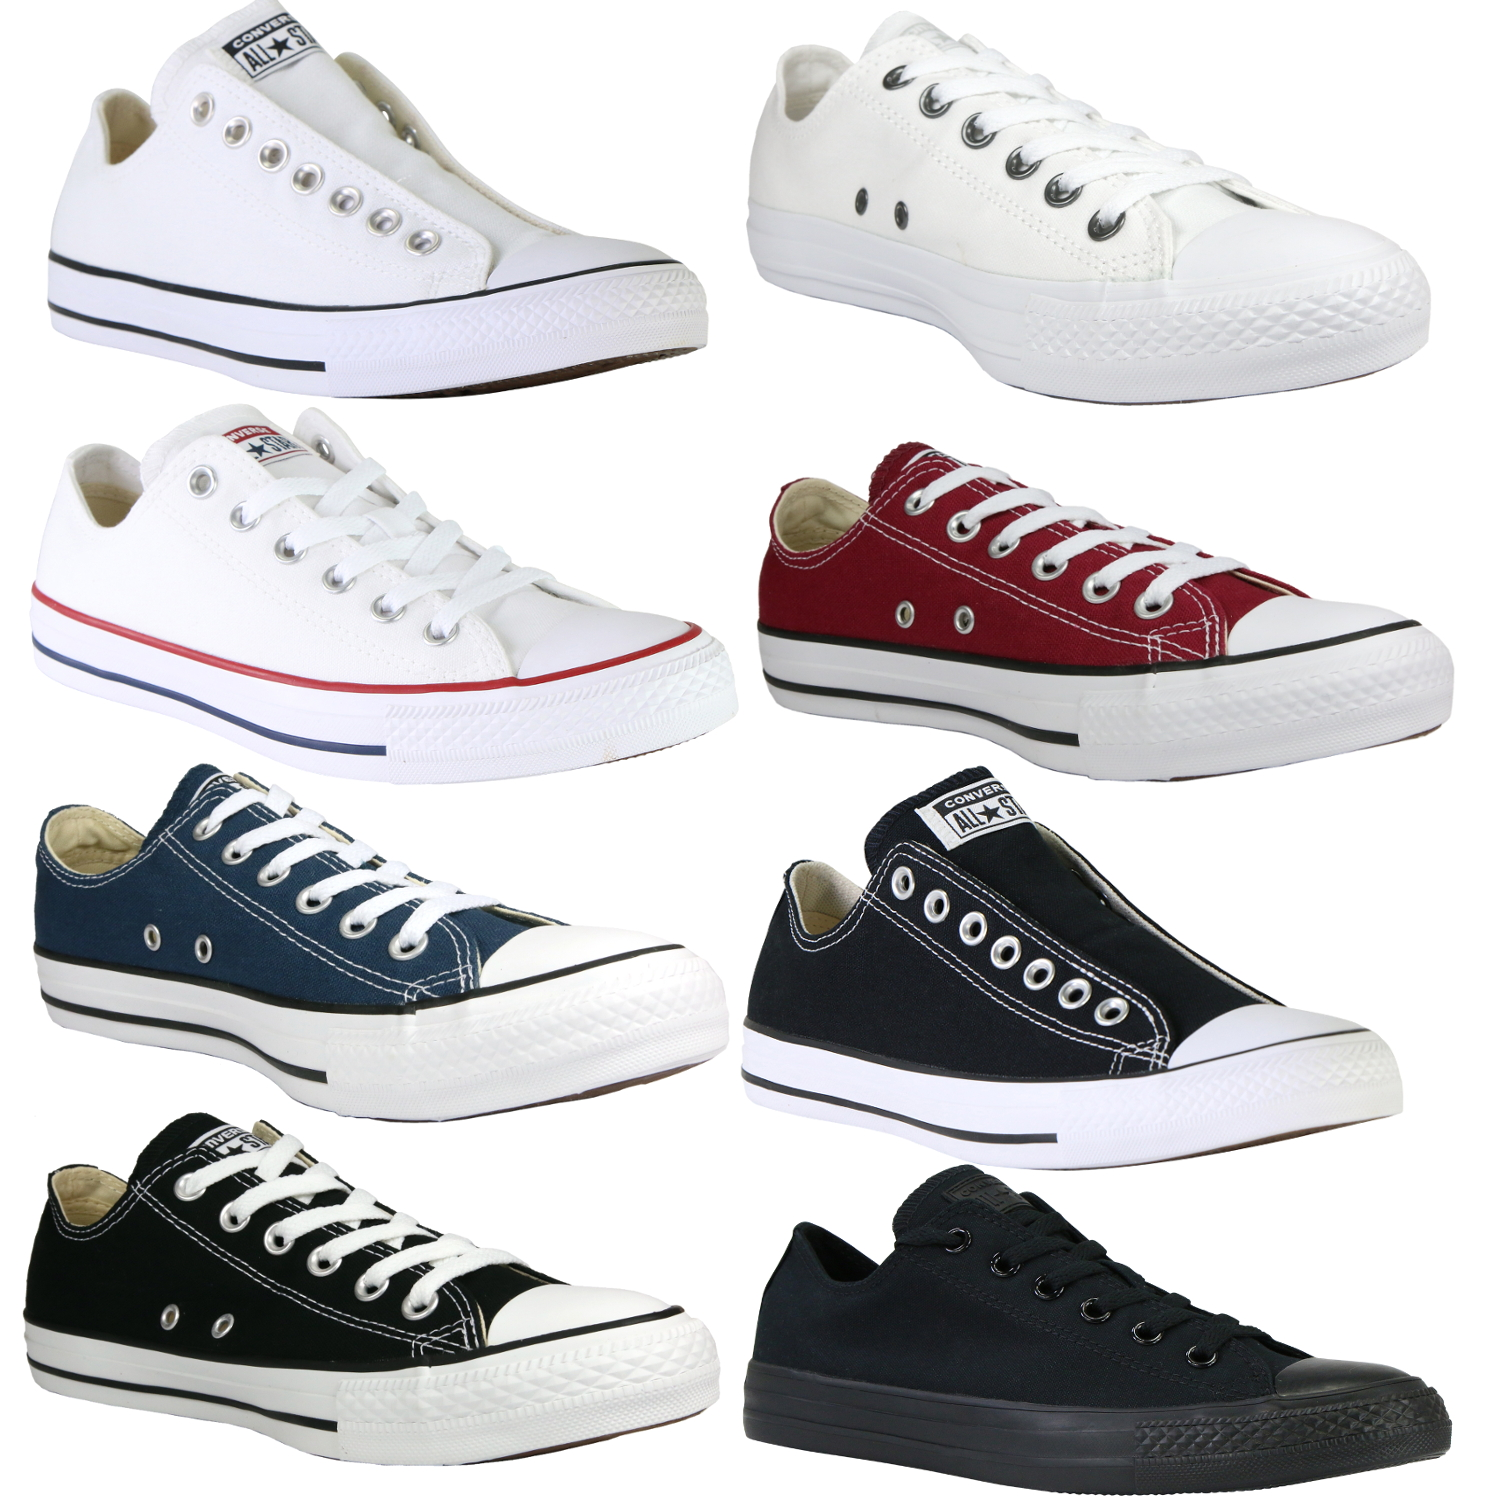 Details about Converse Chucks All Star Ox Canvas Shoes Trainers Various Colours show original title